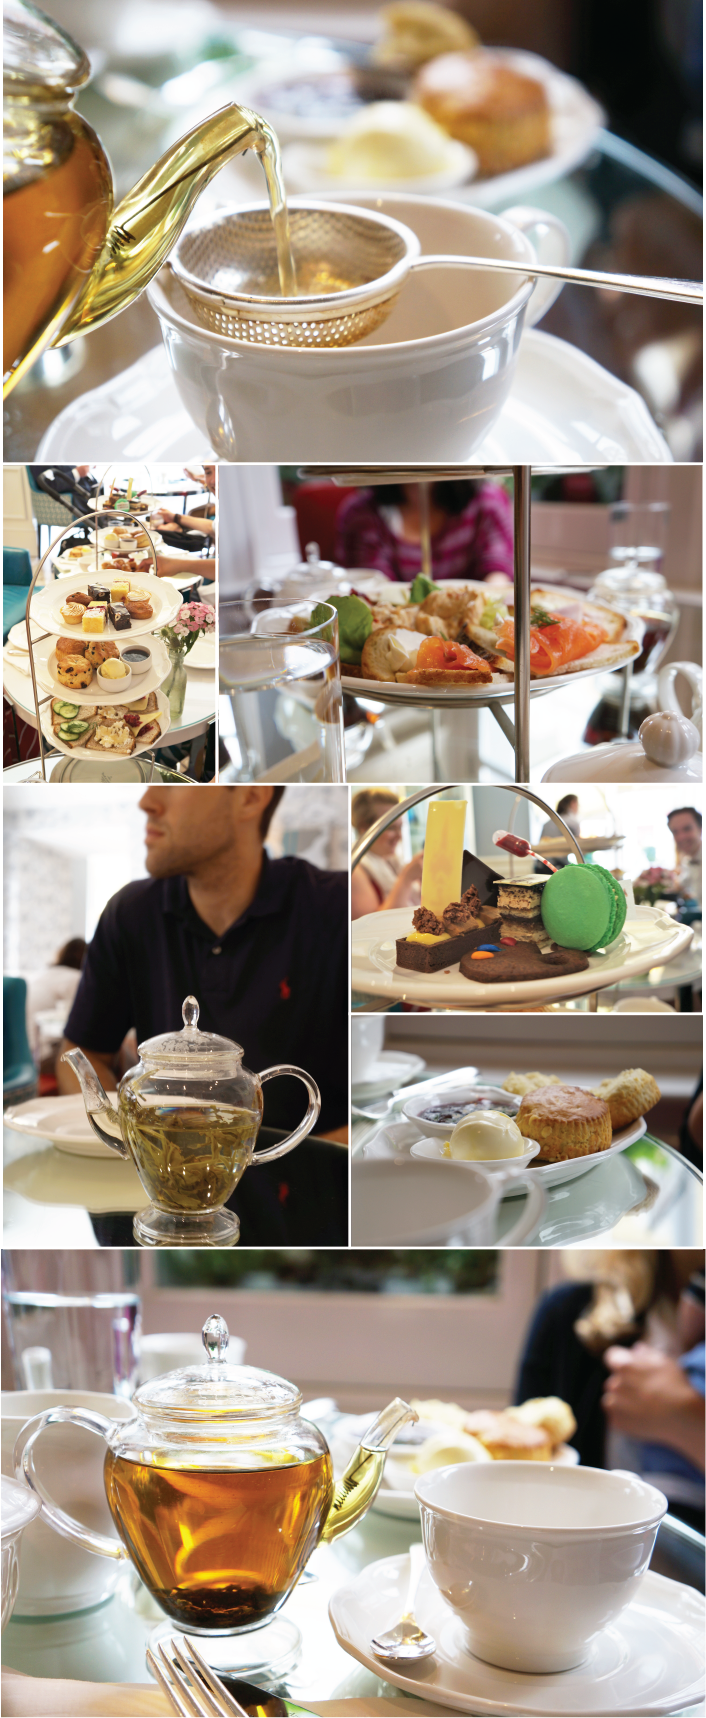 Must London_TDR_The Food